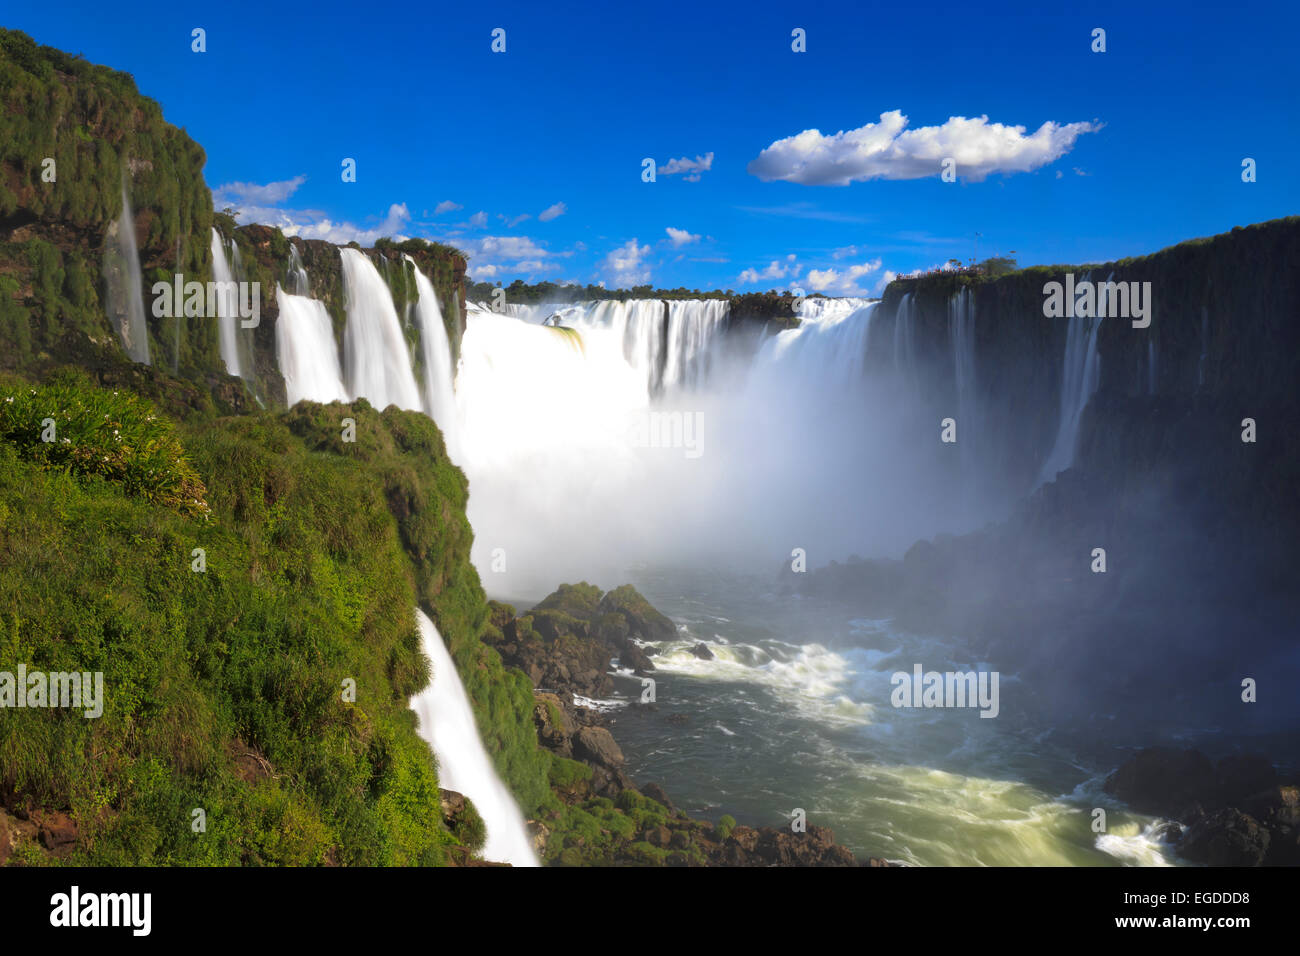 Brazil, Parana, Iguassu Falls National Park (Cataratas do Iguacu) (UNESCO Site), Devil's Throat (Garganta do - Stock Image